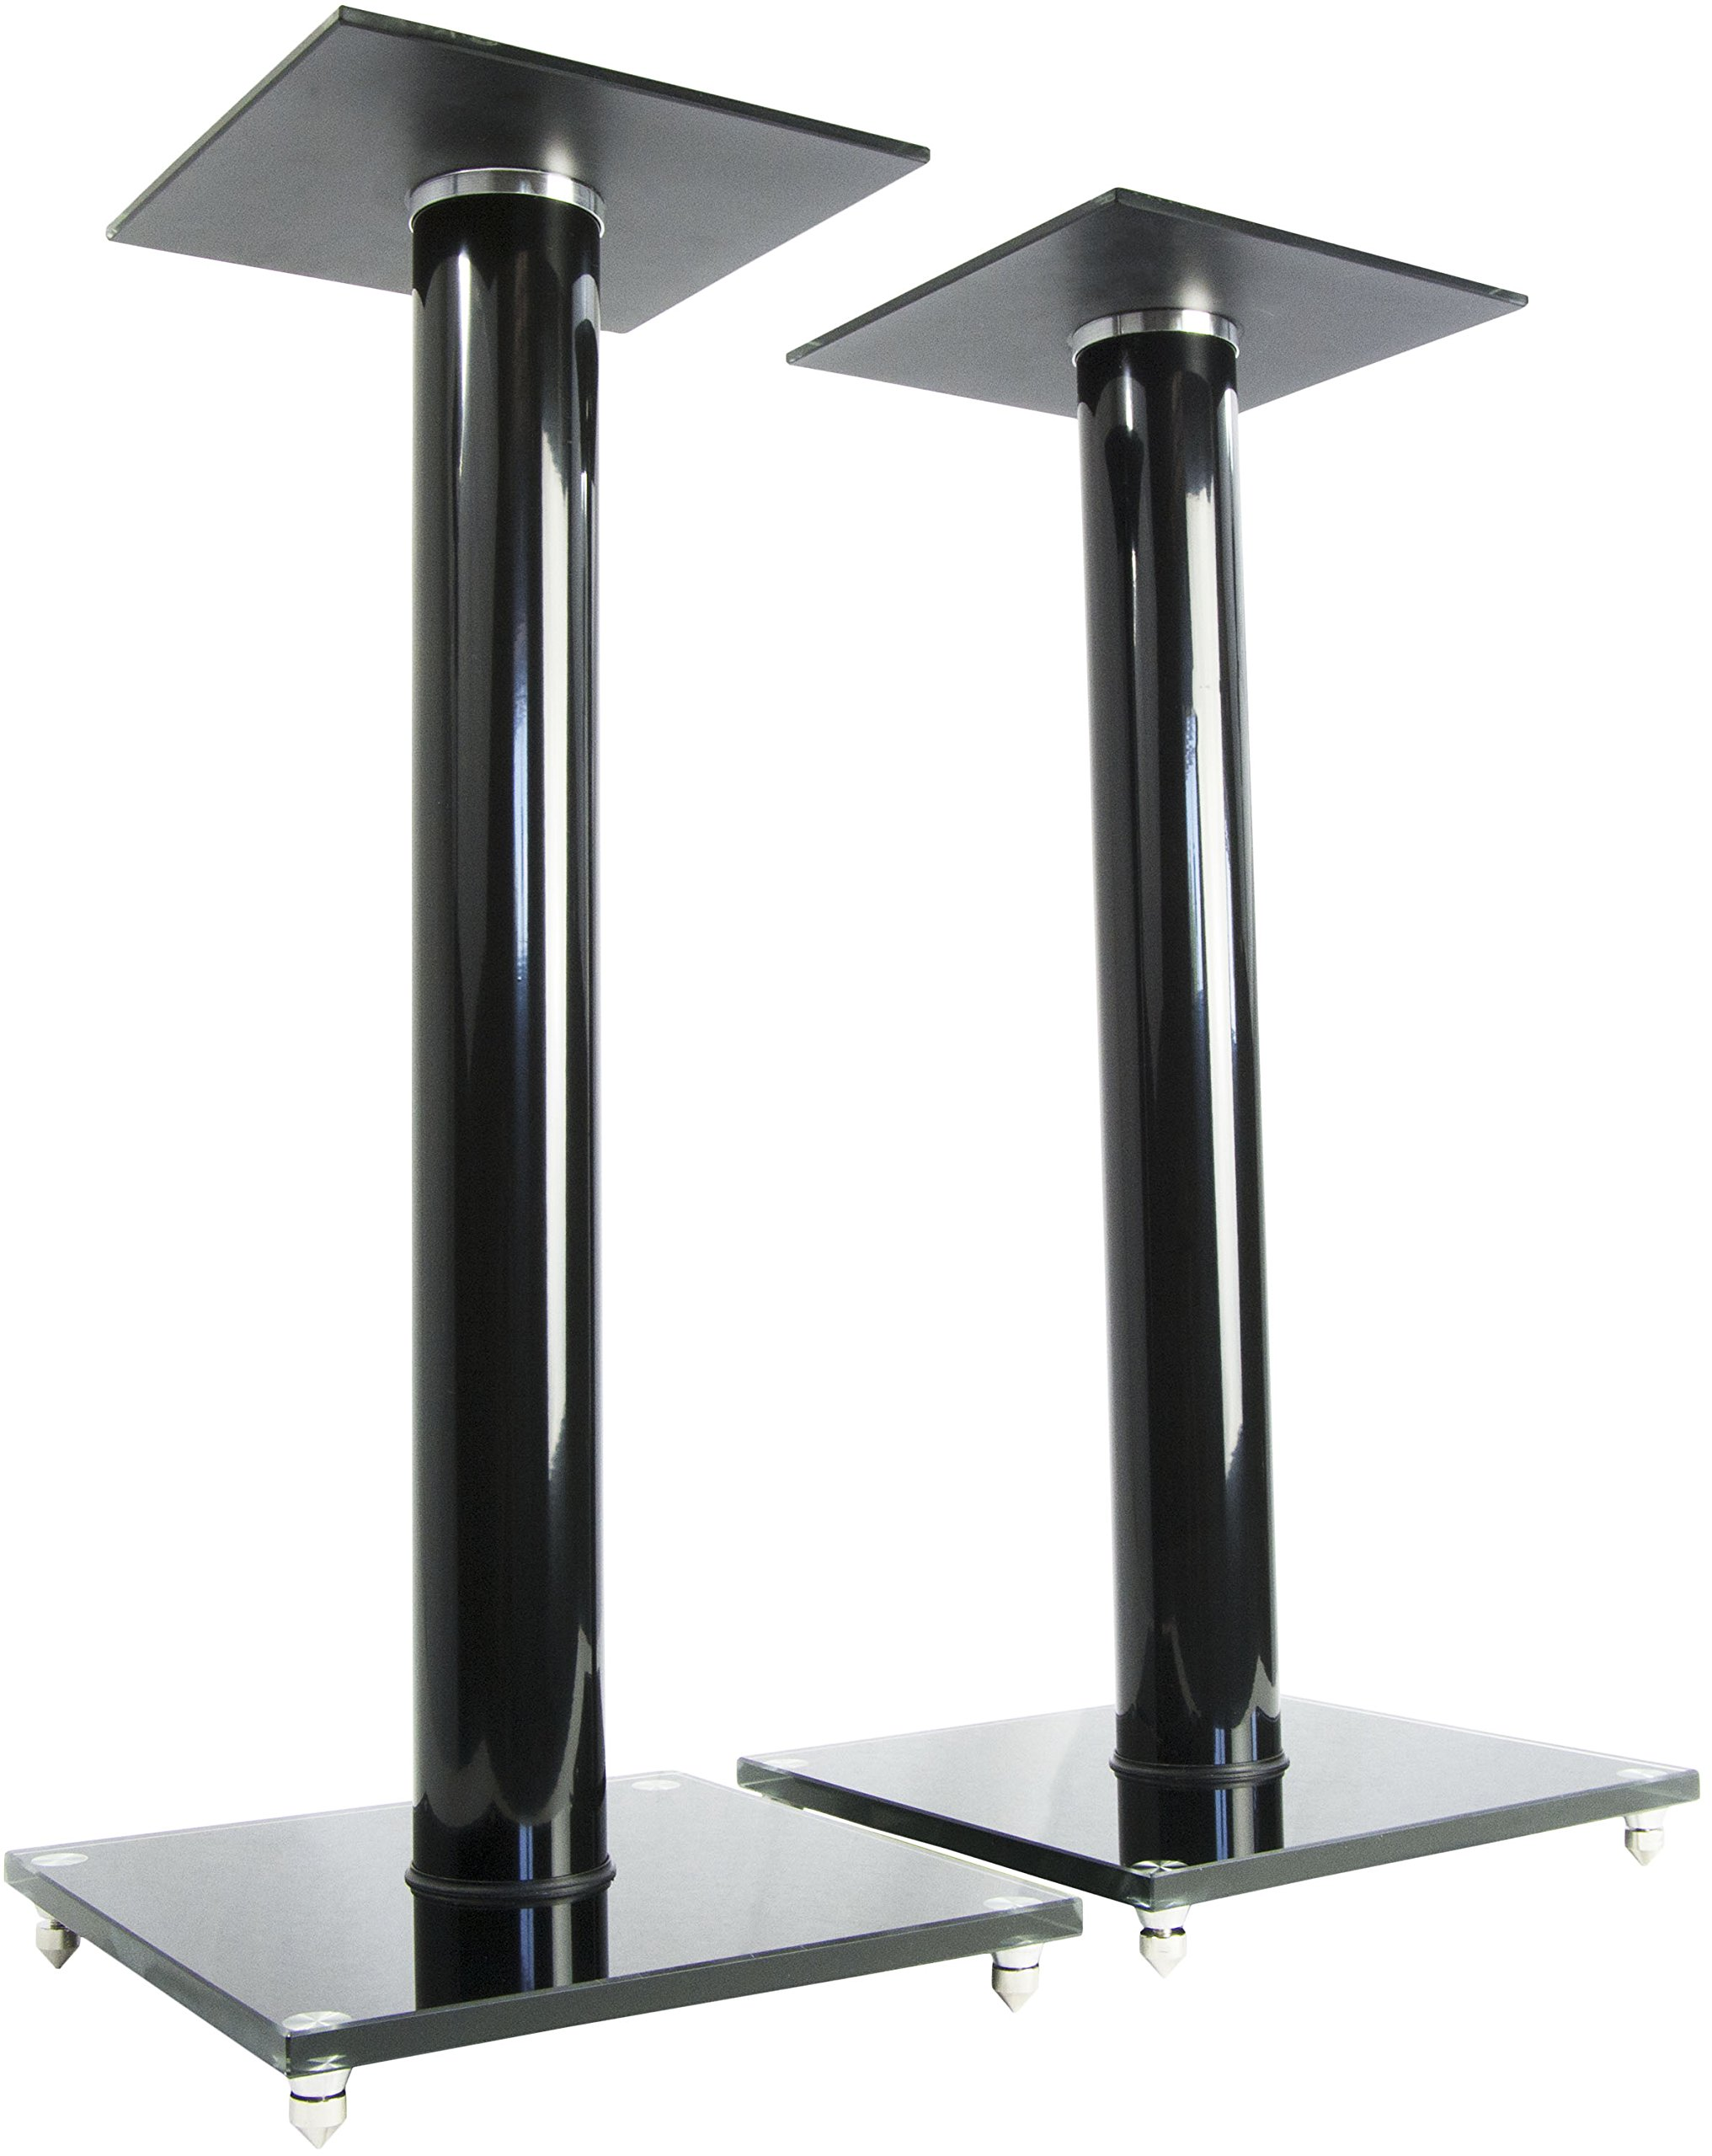 VIVO Premium Universal Floor Speaker Stands for Surround Sound & Book Shelf Speakers (STAND-SP02B)